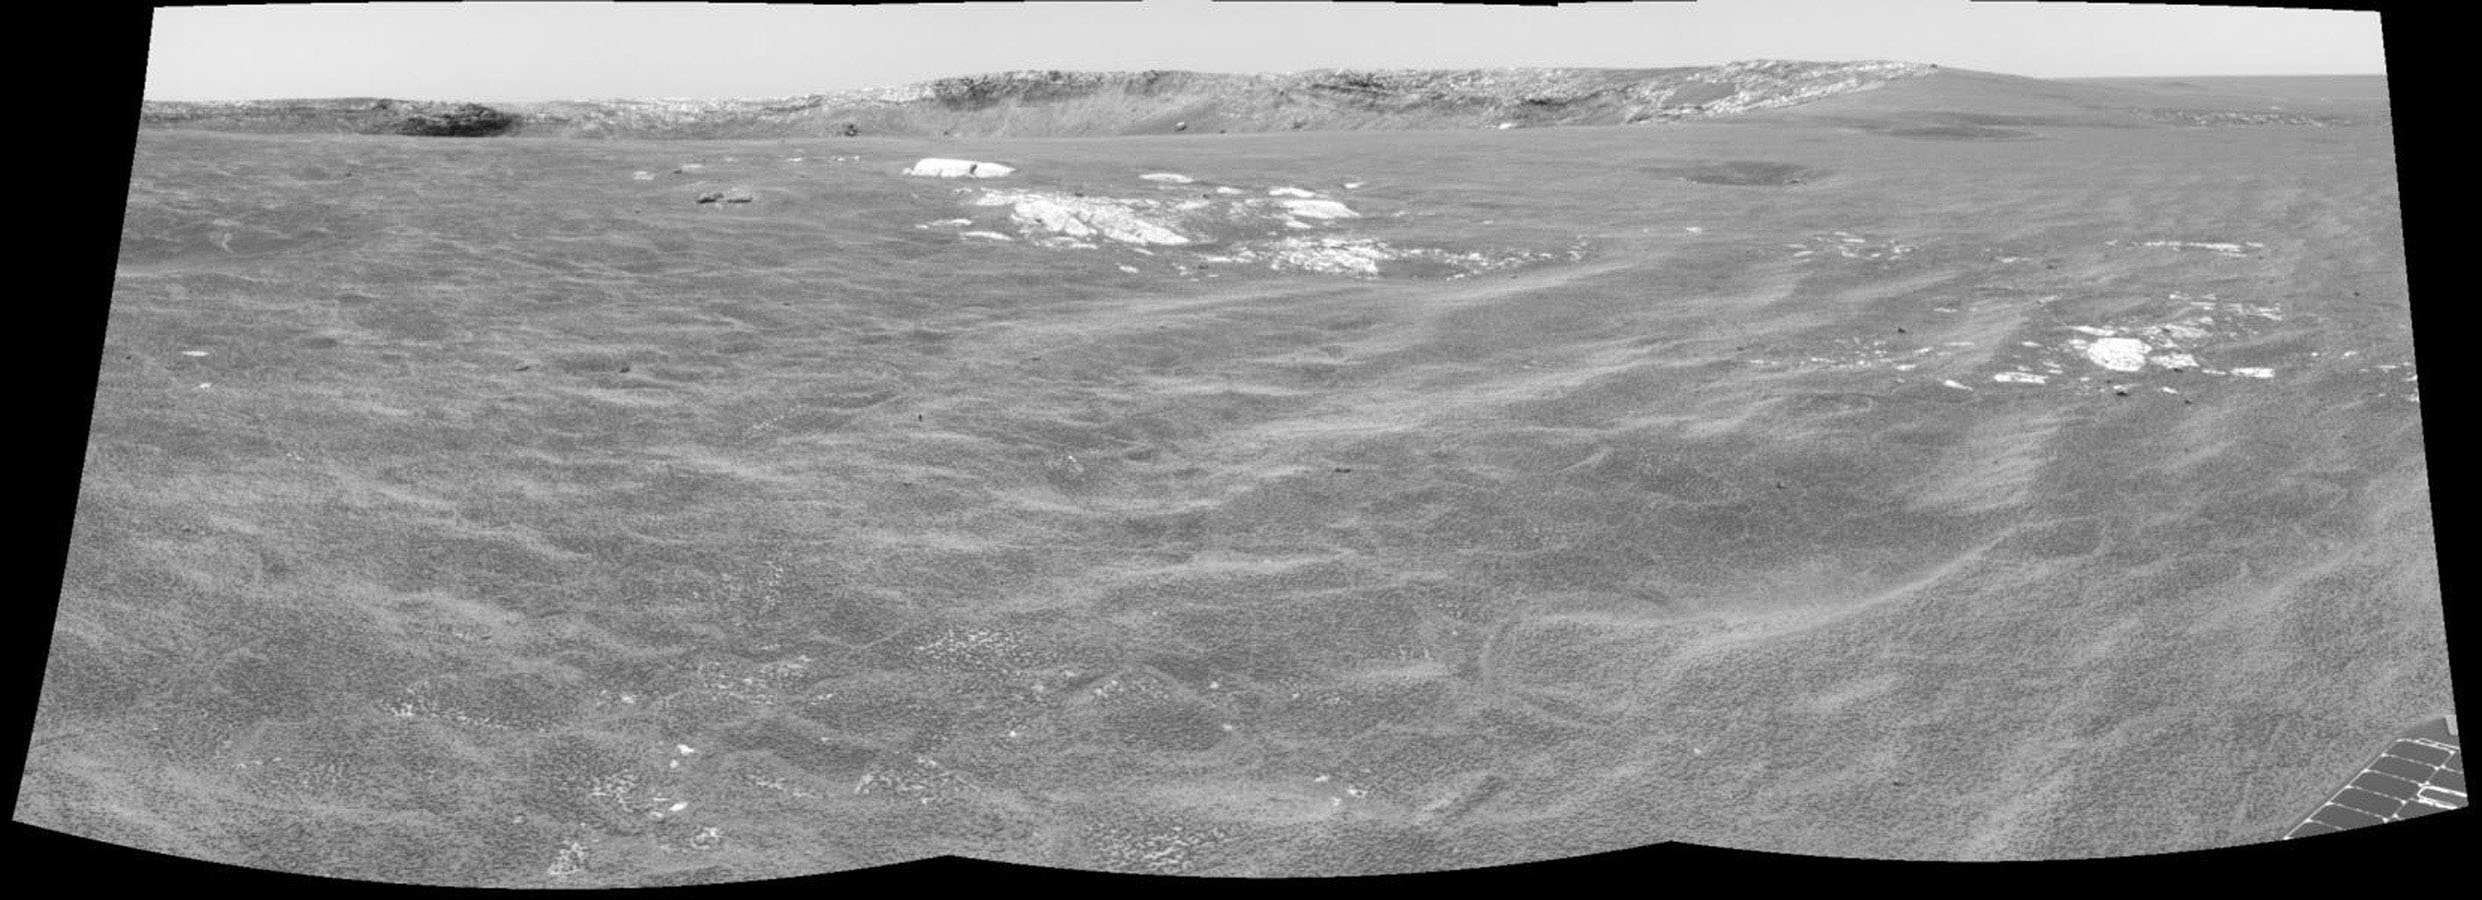 This image from NASA's Mars Rover Opportunity shows the rover's view of Meridiani Planum as it headed to Endurance Crater on Mars.